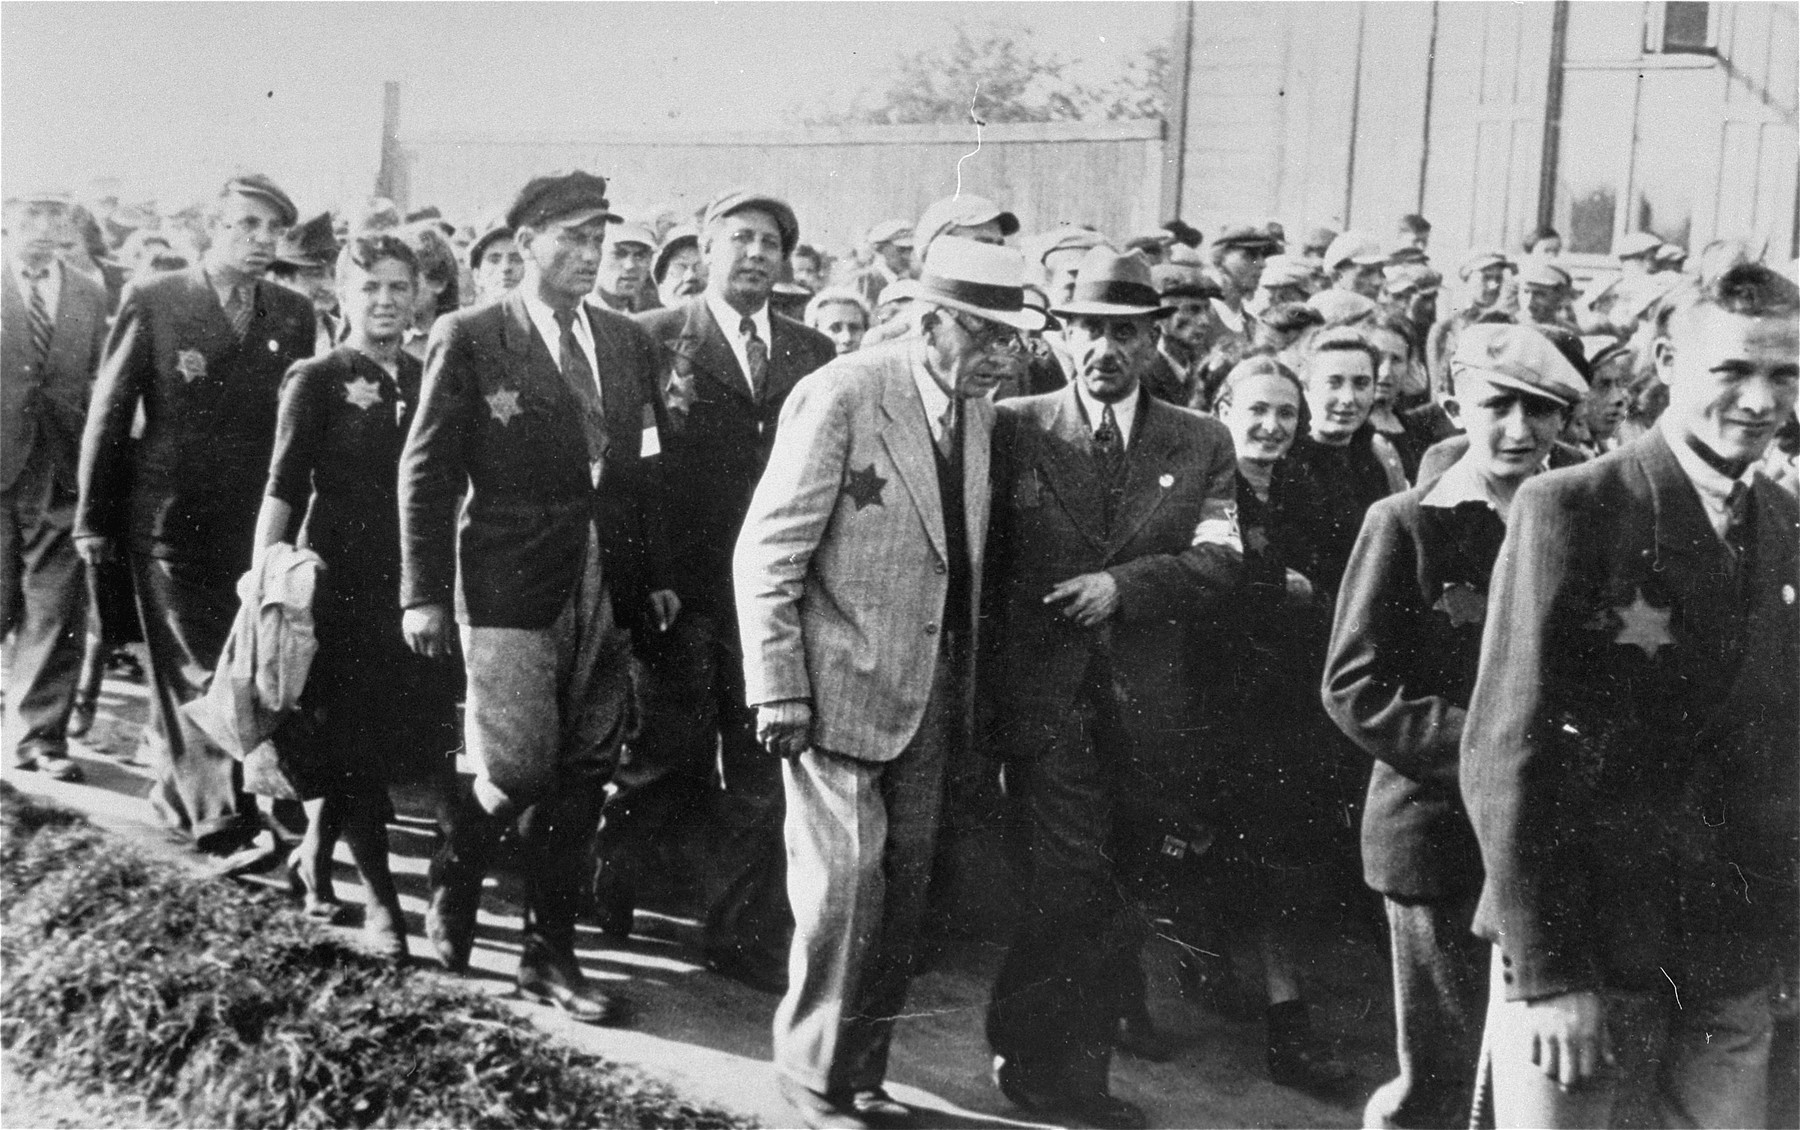 Mordechai Chaim Rumkowski, chairman of the Jewish Council (center), leaves the site of a public demonstration in the Lodz ghetto after delivering a speech to calm the people's fear and anger about food provisioning in the ghetto.    Also pictured are: Leon Rozenblat (walking with Rumkowski) and Shmuel Eizmann (Rumkowksi's bodyguard, behind Rumkowski and to the right).